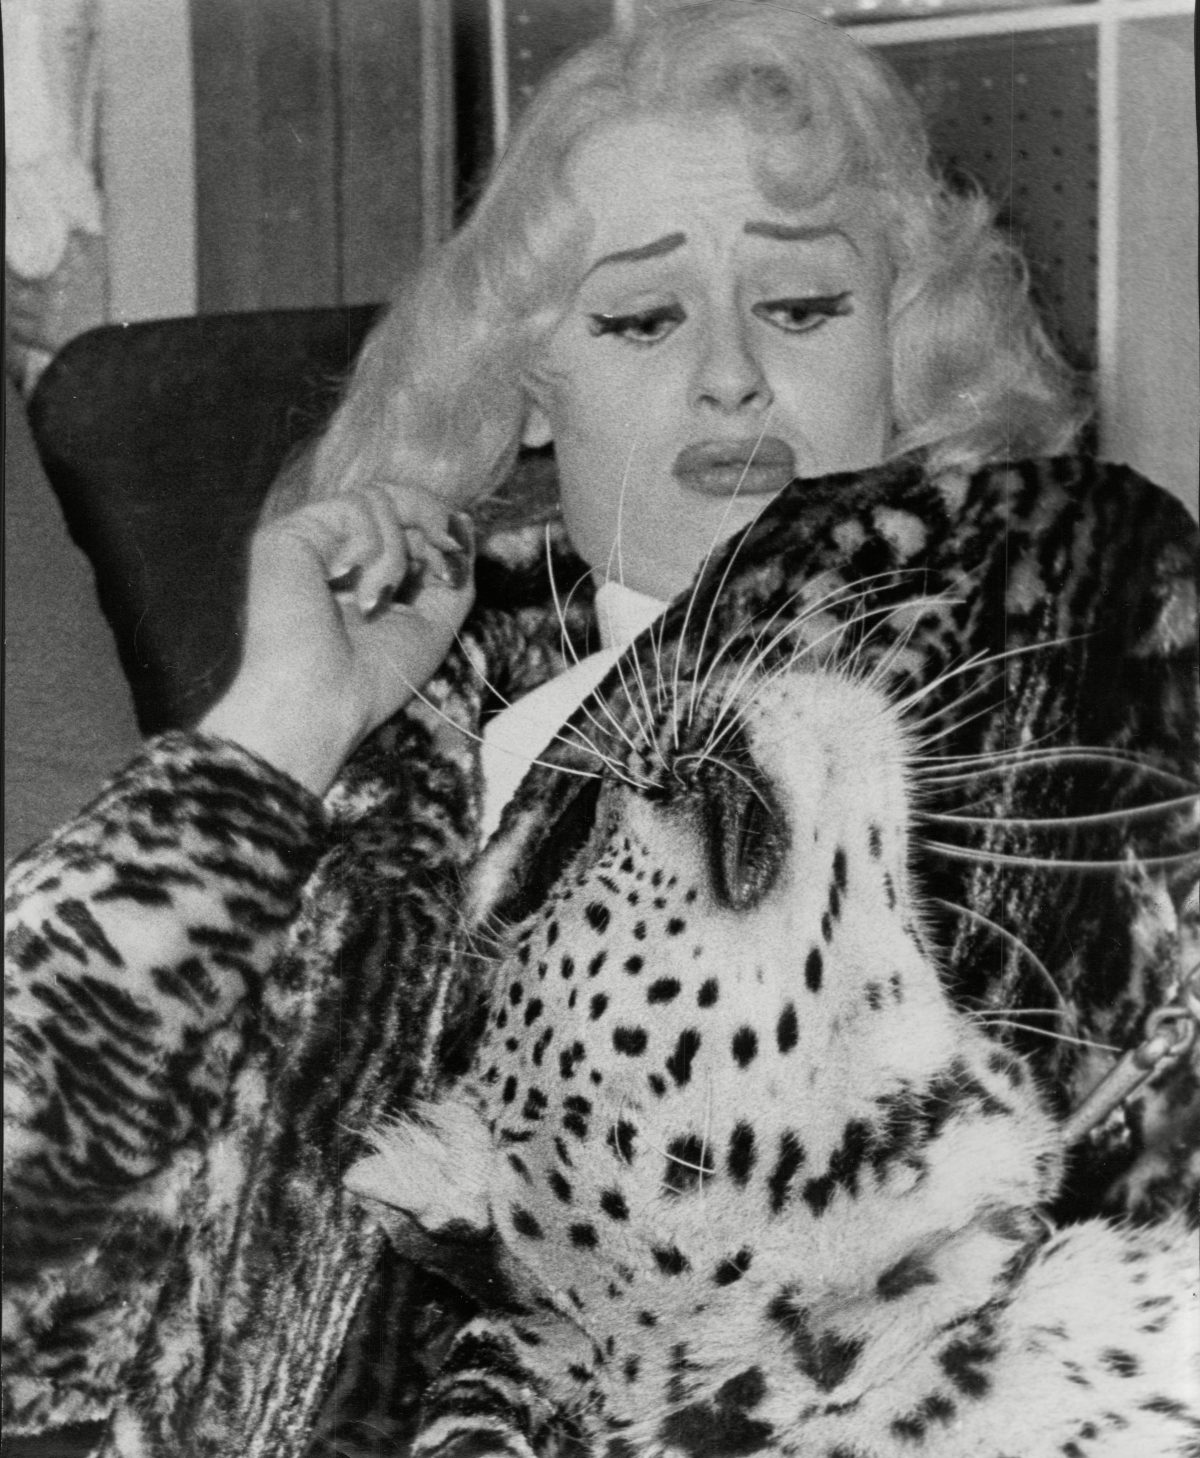 Sabrina (norma Ann Sykes) With Chico The Cuddly Leopard And London Airport 2 Mar 1958